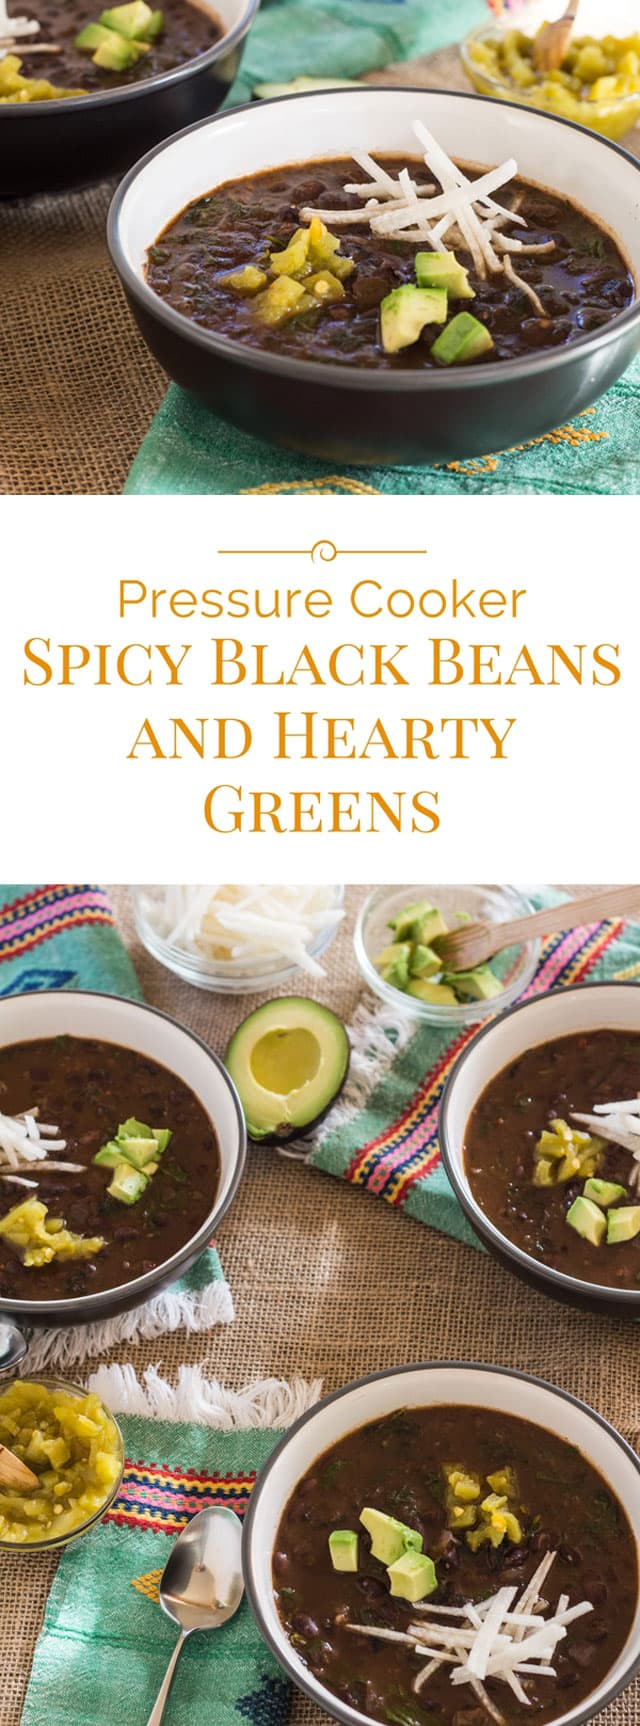 Perfectly spiced with smoky chipotle chiles, mild tomato salsa, and green chiles, and rounded out with an ample helping of leafy greens–well, these beans are not only delicious; they're good for you.